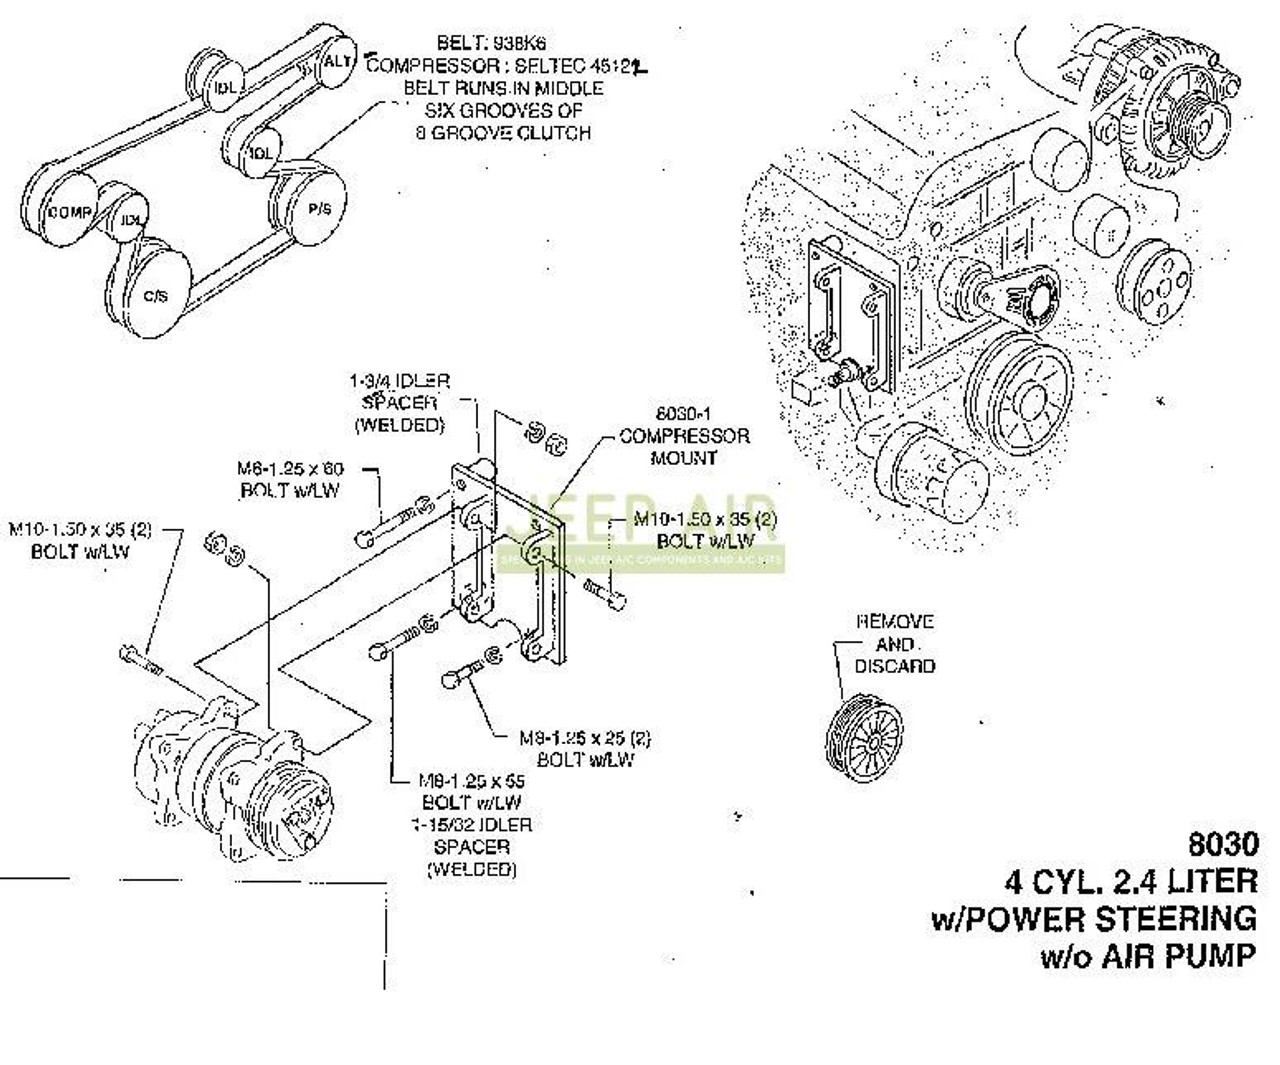 small resolution of 2003 jeep wrangler engine diagram schema wiring diagram 2000 jeep wrangler engine diagram